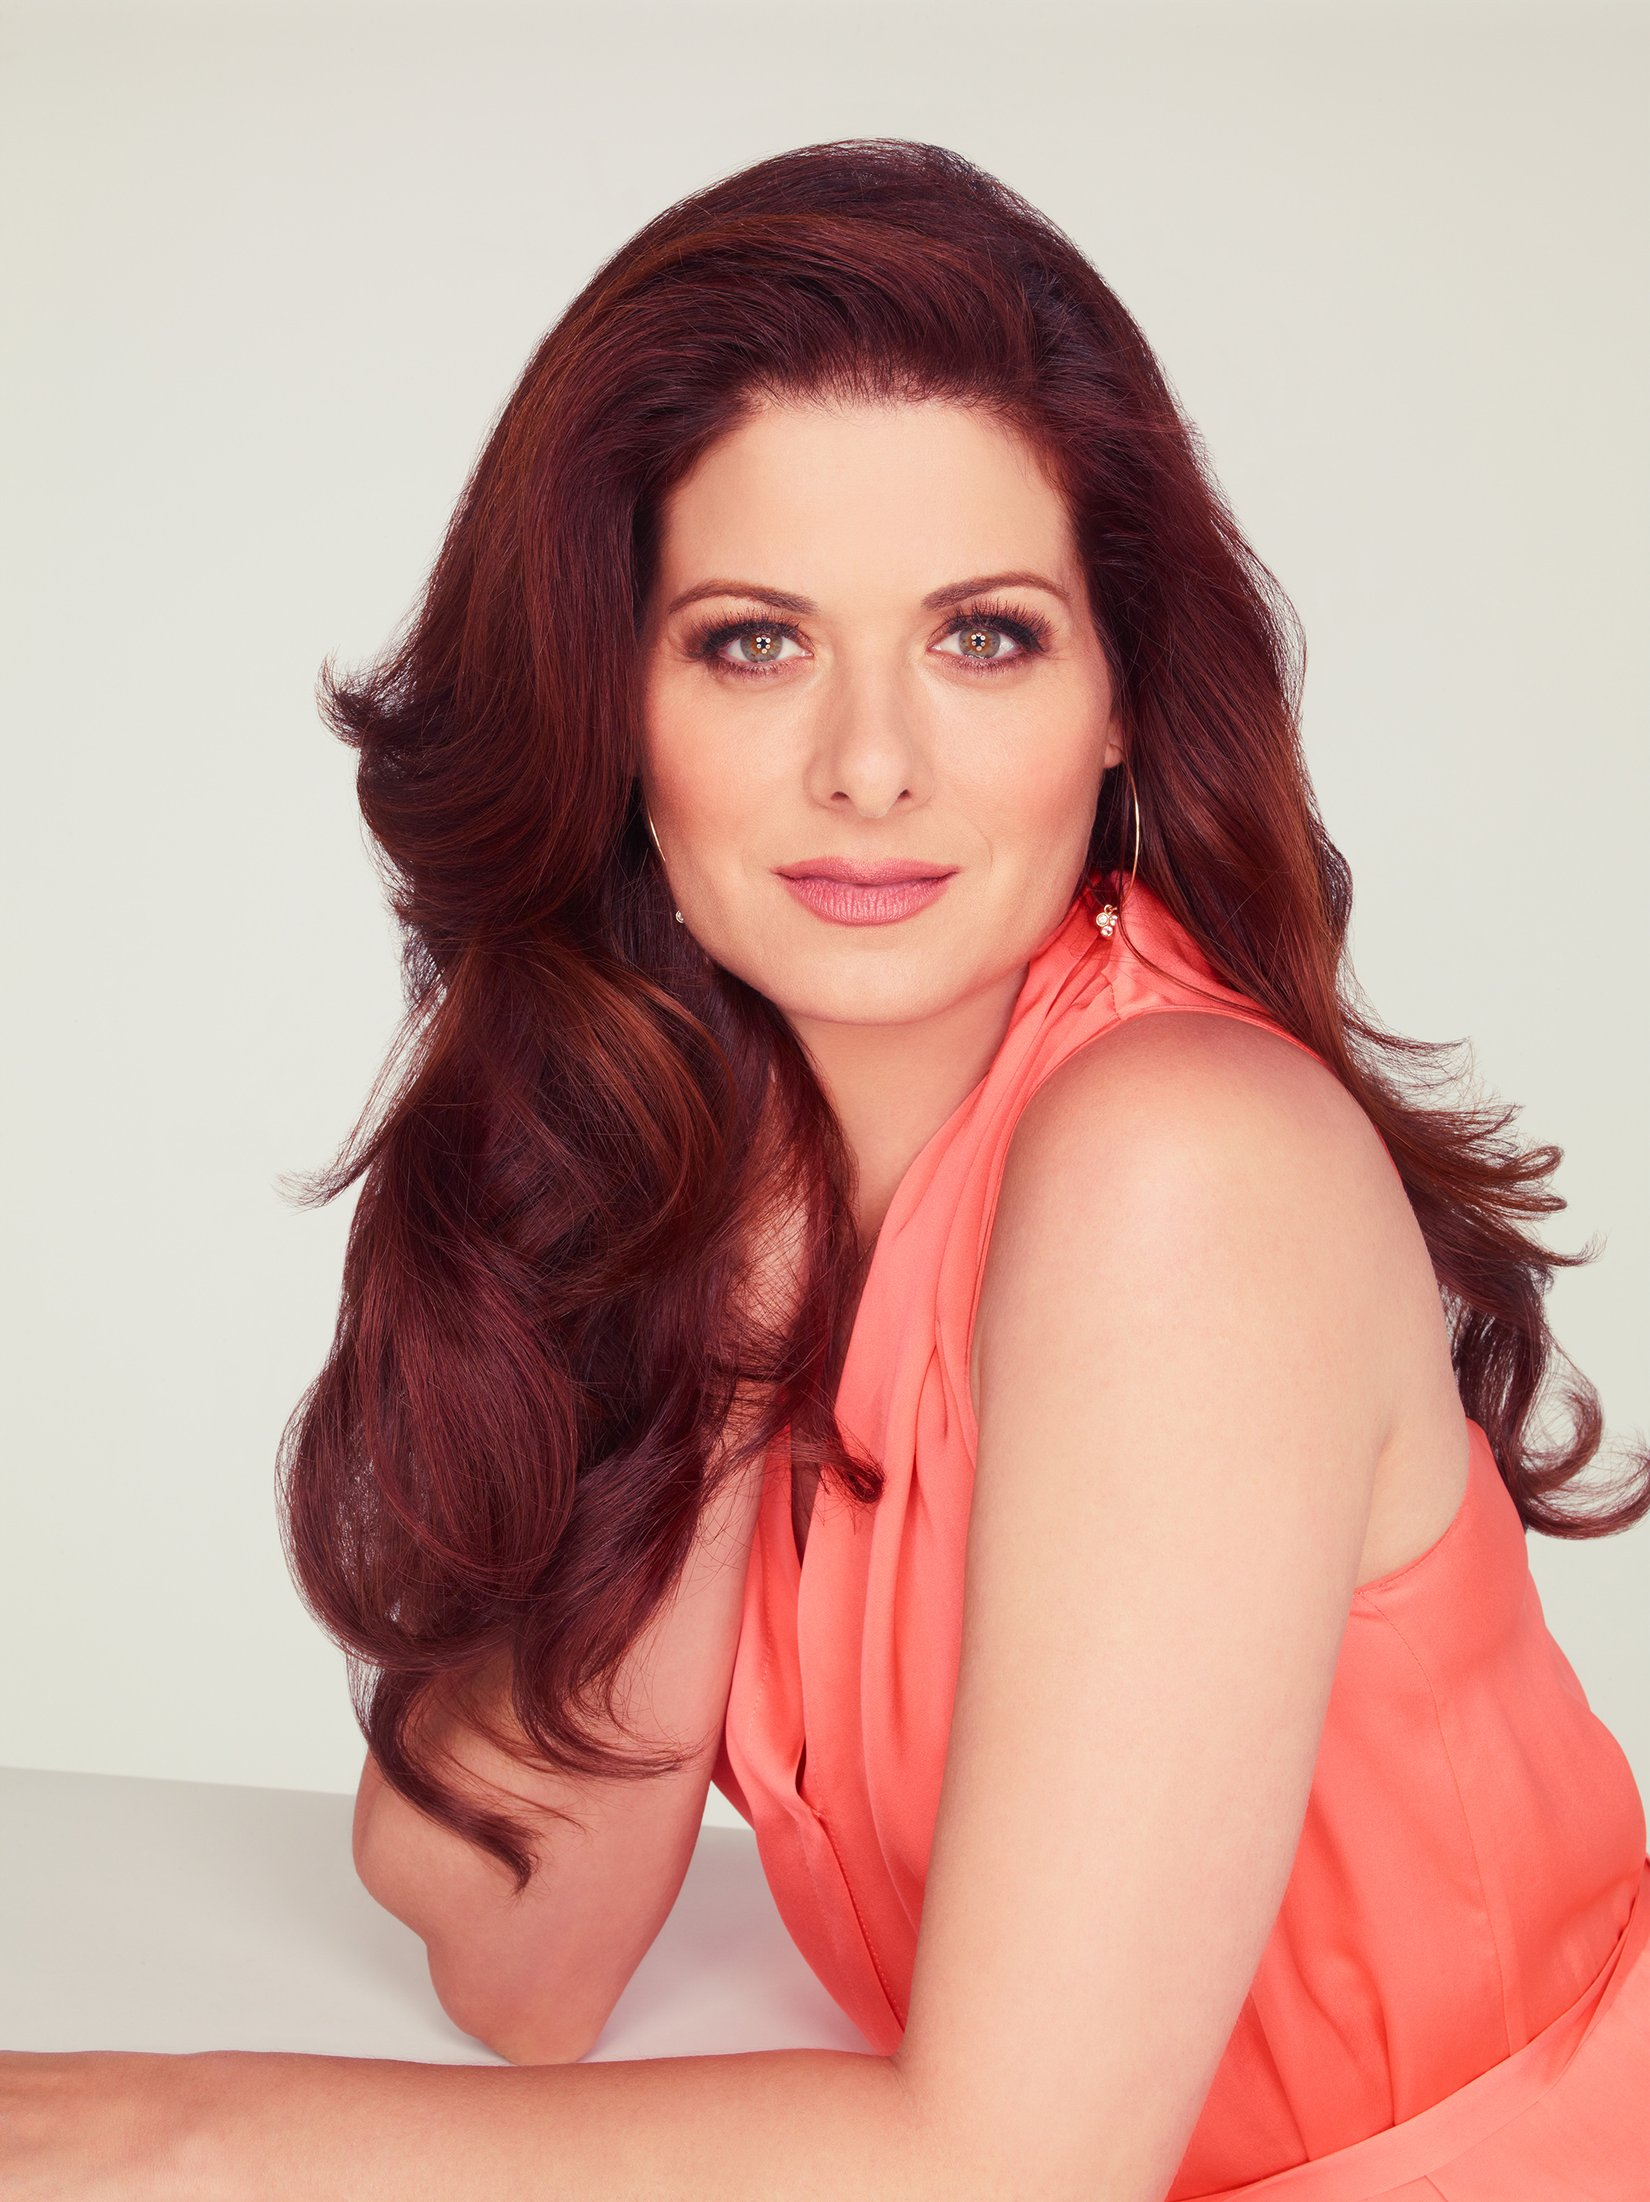 Actress Debra Messing will appear in the National Vote-at-Home Initiative, addressing Michigan voters with their state's vote-by-mail procedures.